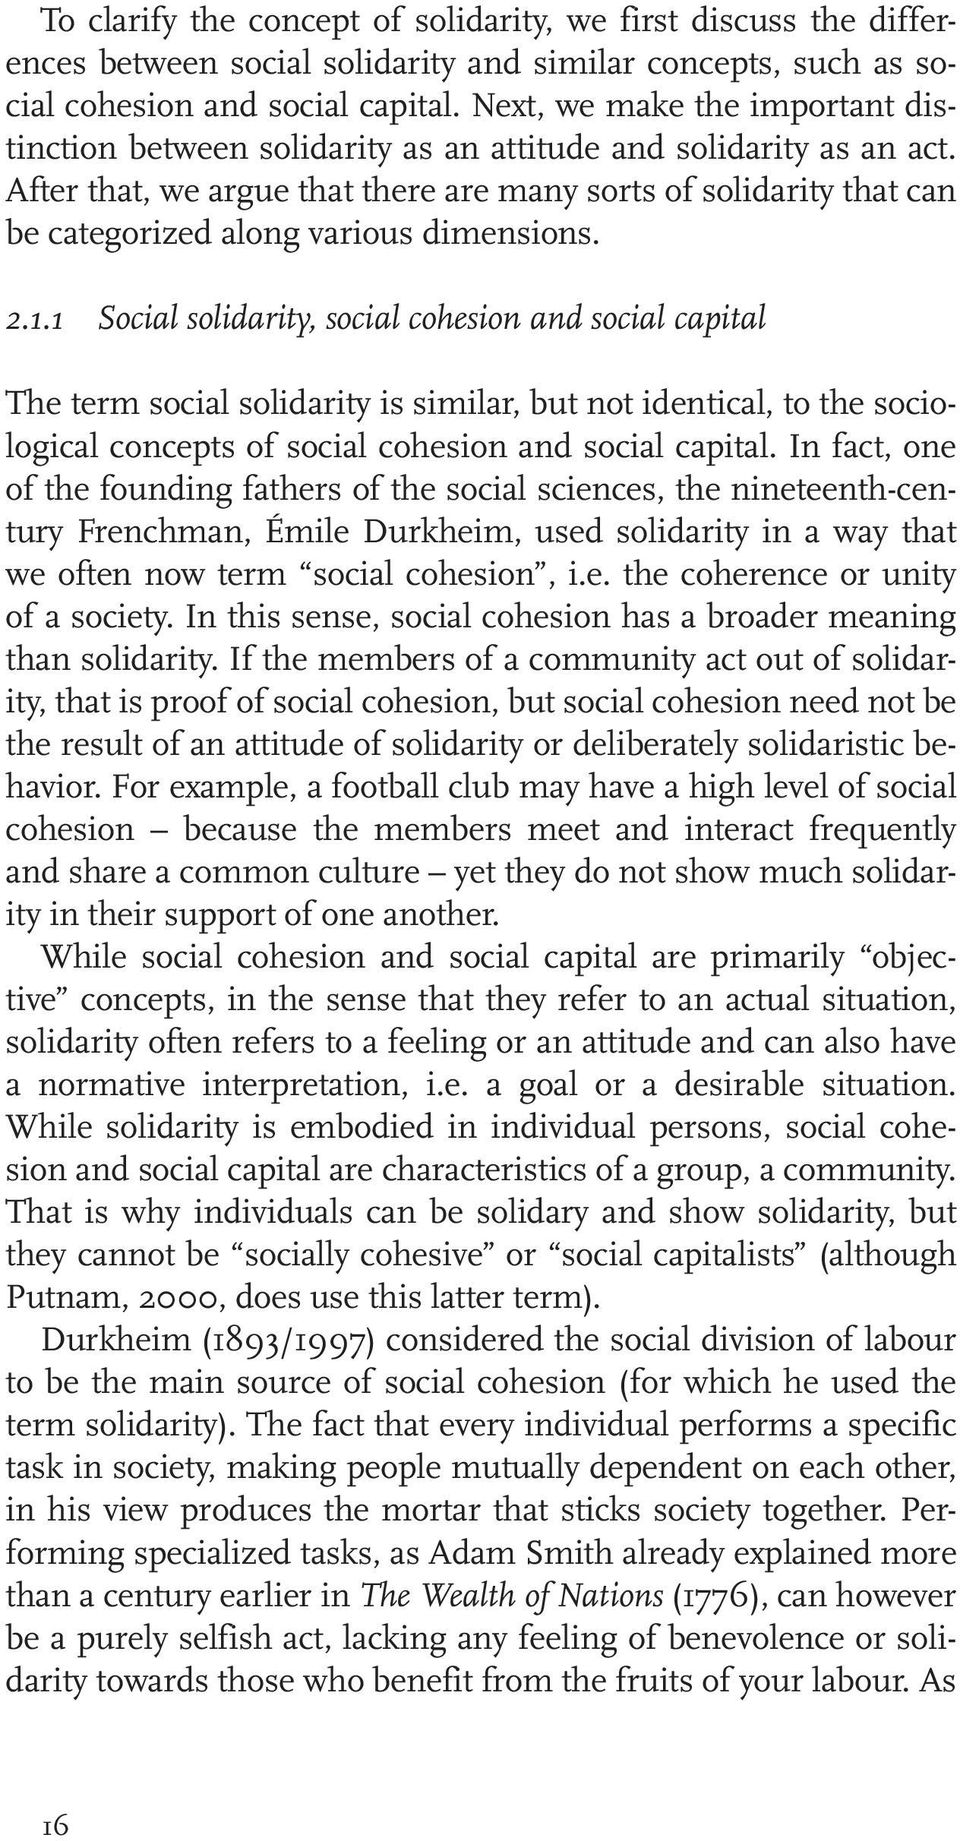 After that, we argue that there are many sorts of solidarity that can be categorized along various dimensions. 2.1.